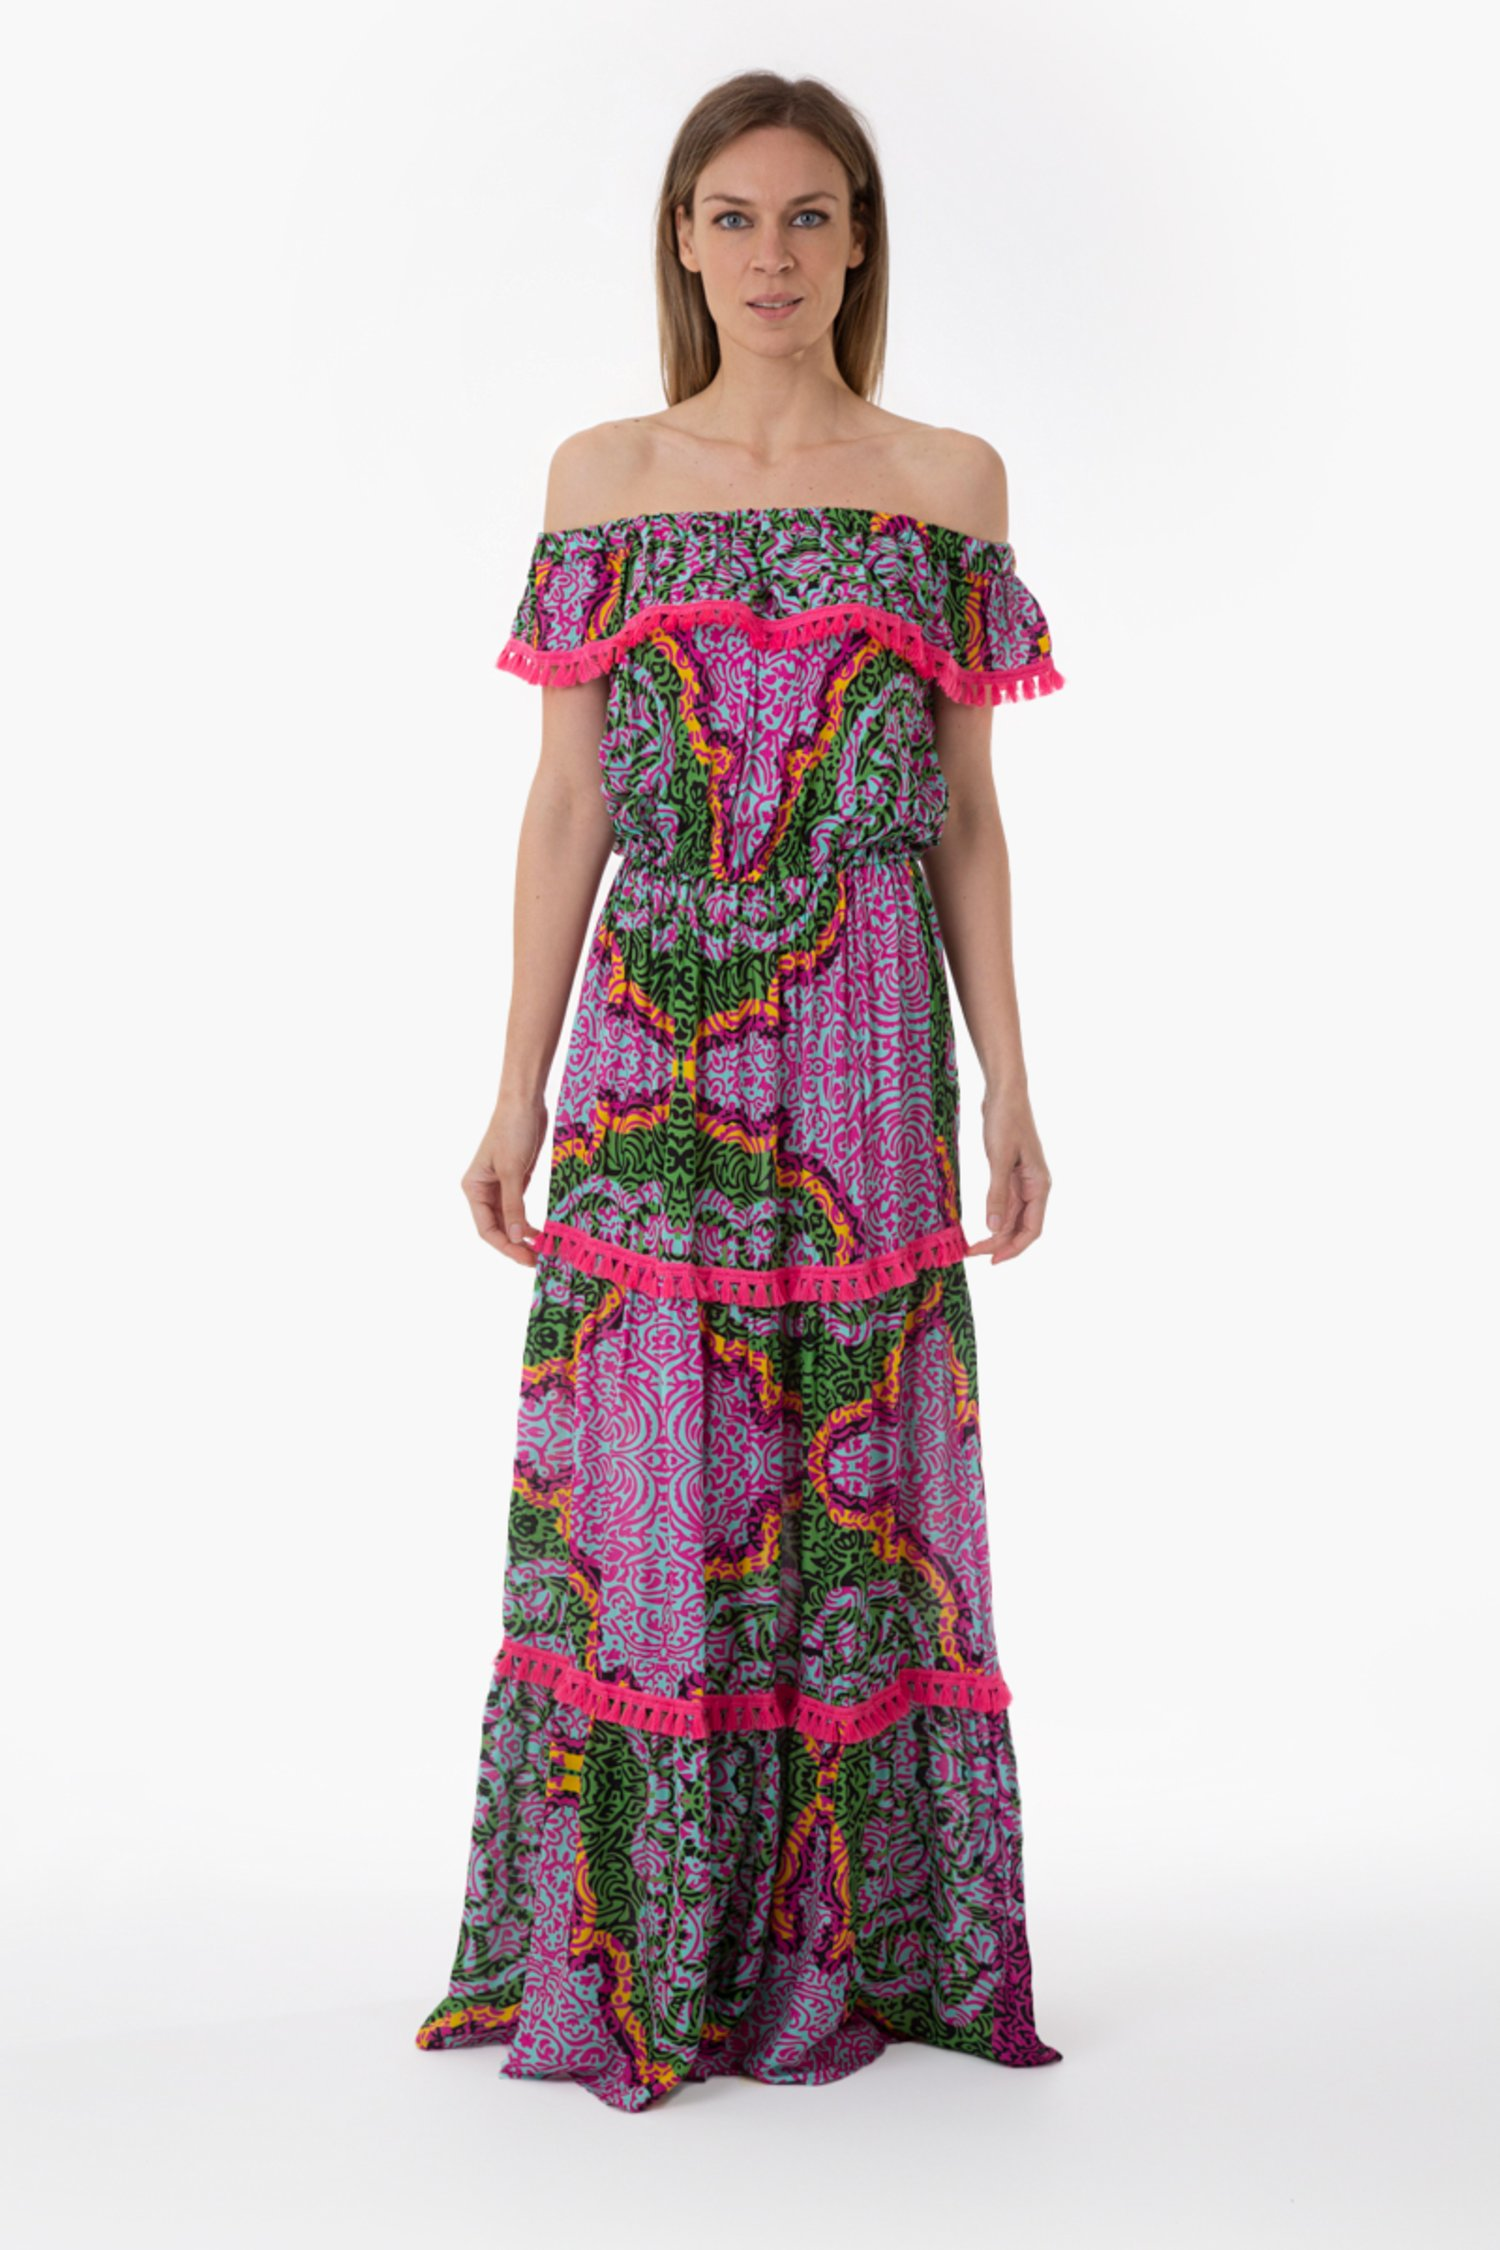 PRINTED VISCOSE LONG DRESS WITH FRILLS - India Pop Fuxia